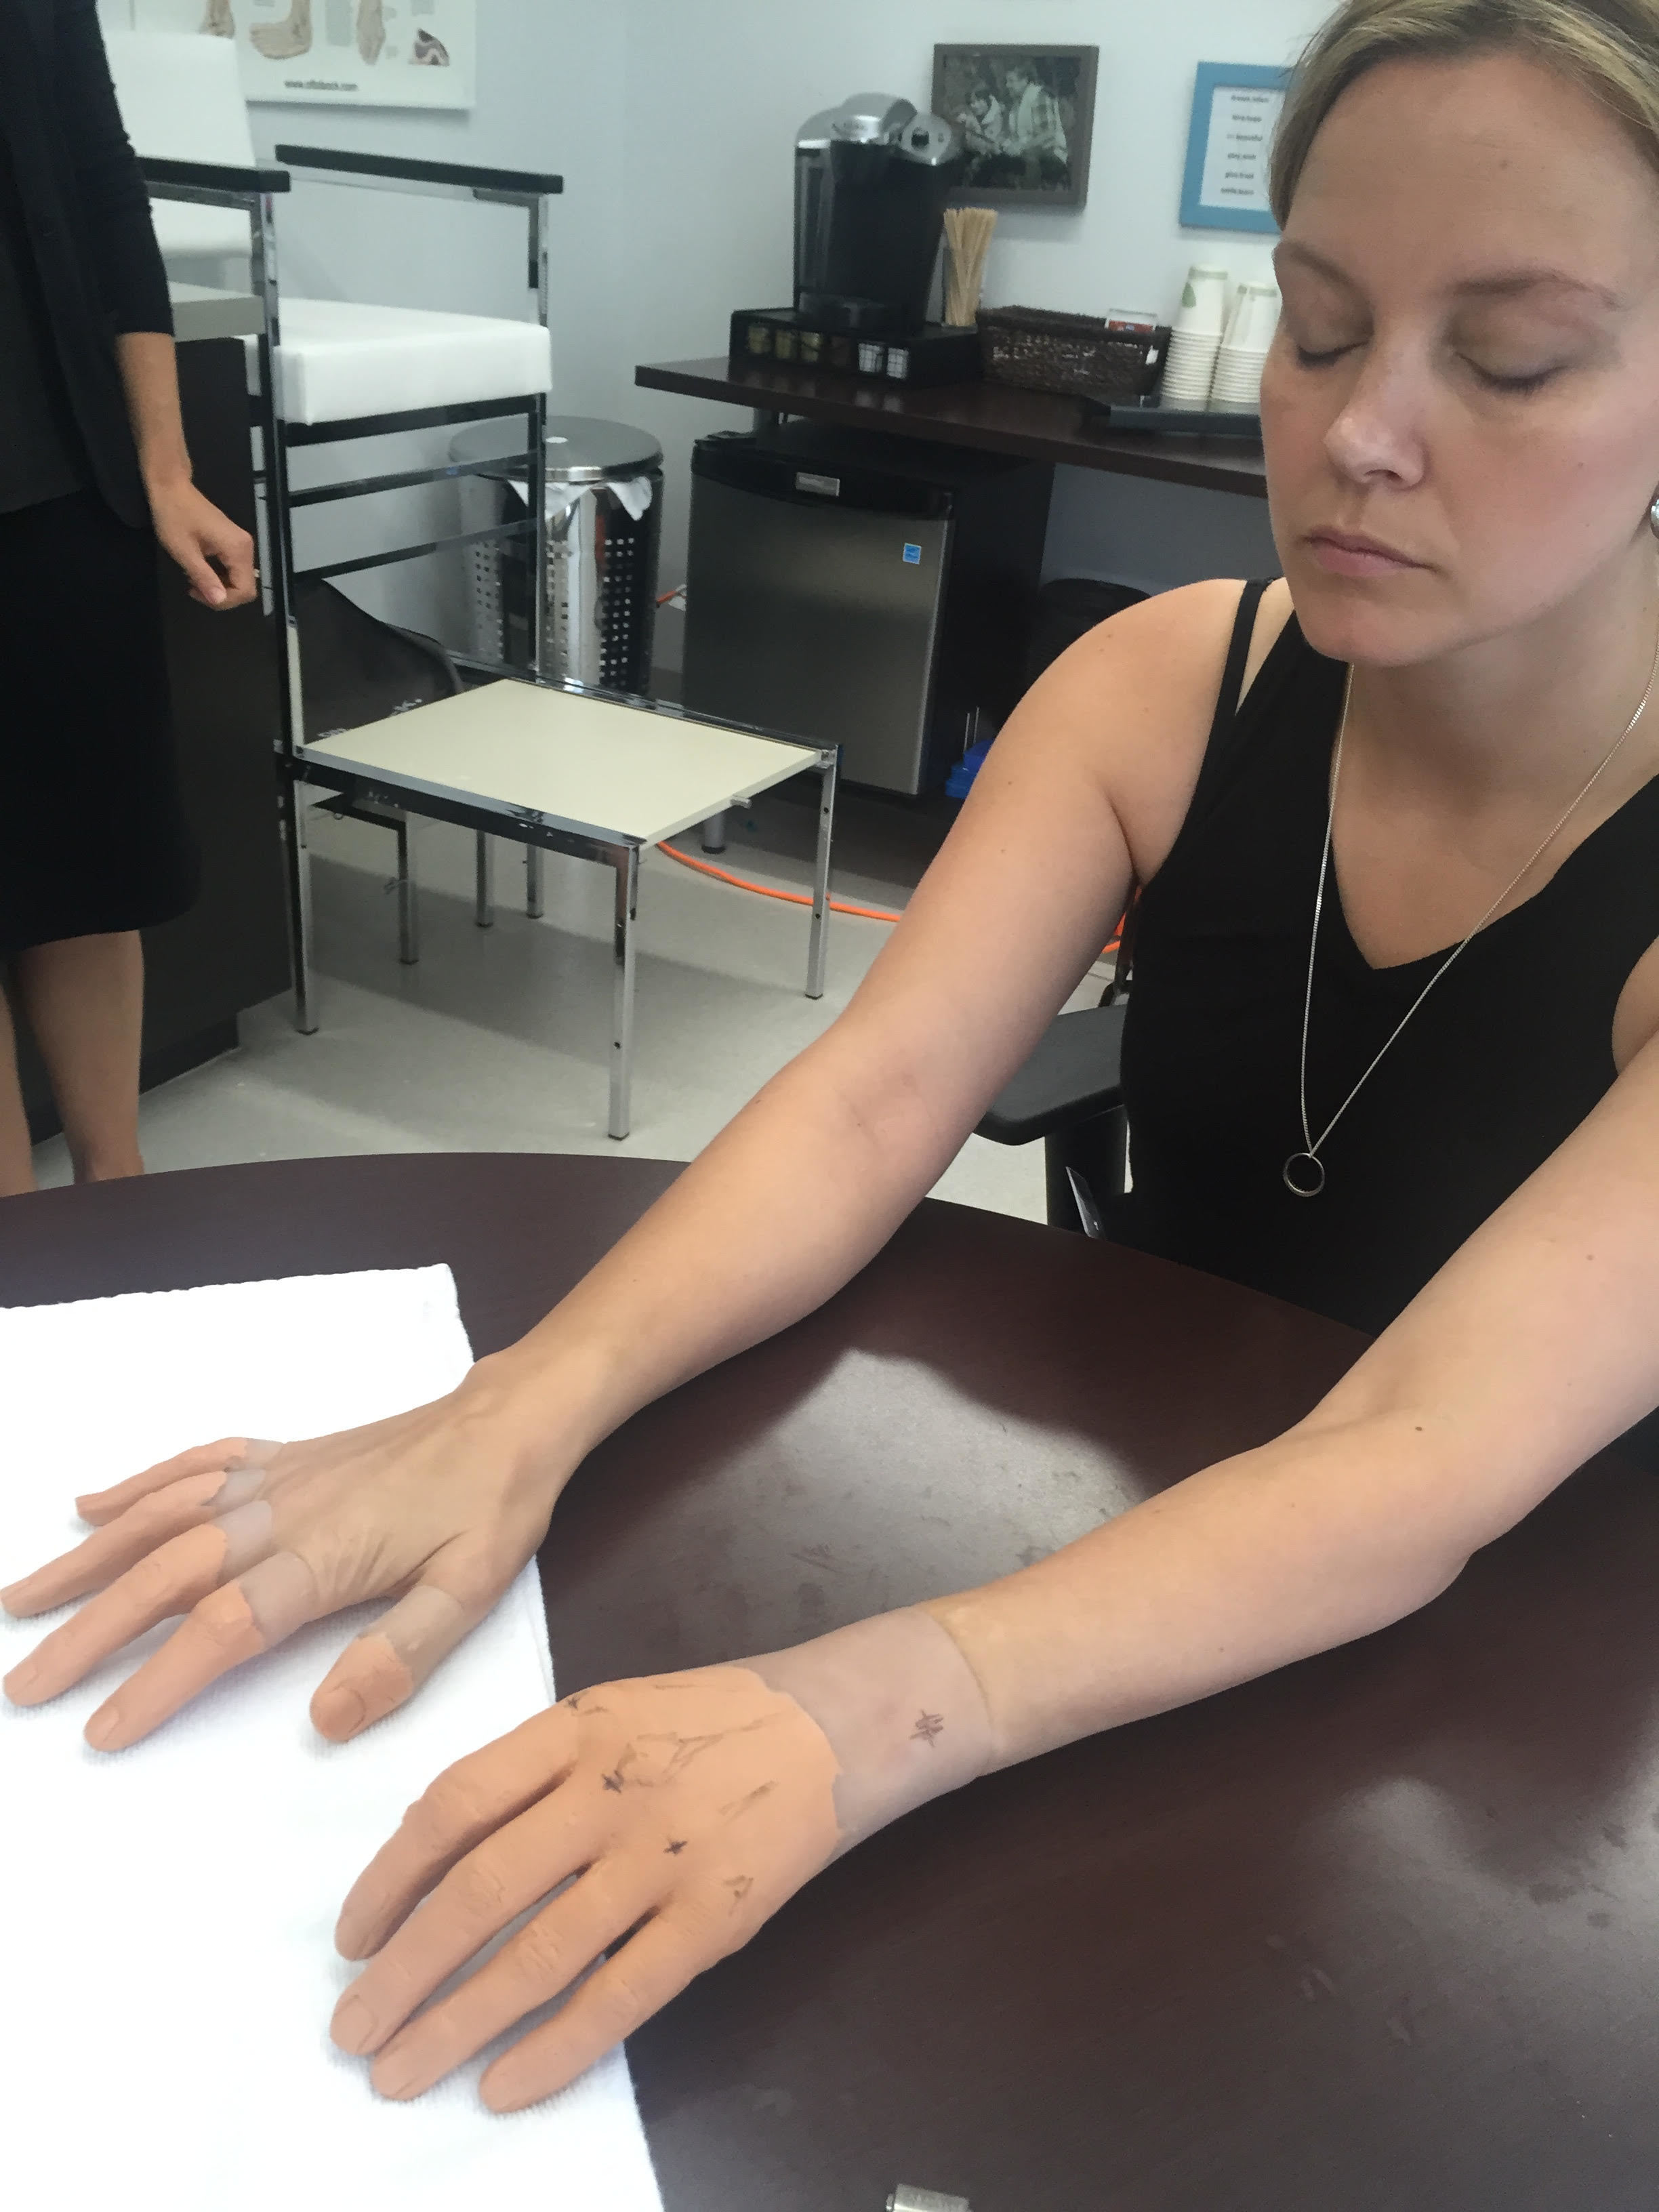 Elaine Dodge-Lynch getting fitted for her prosthetic hands at the Ottobock lab. (Submitted)